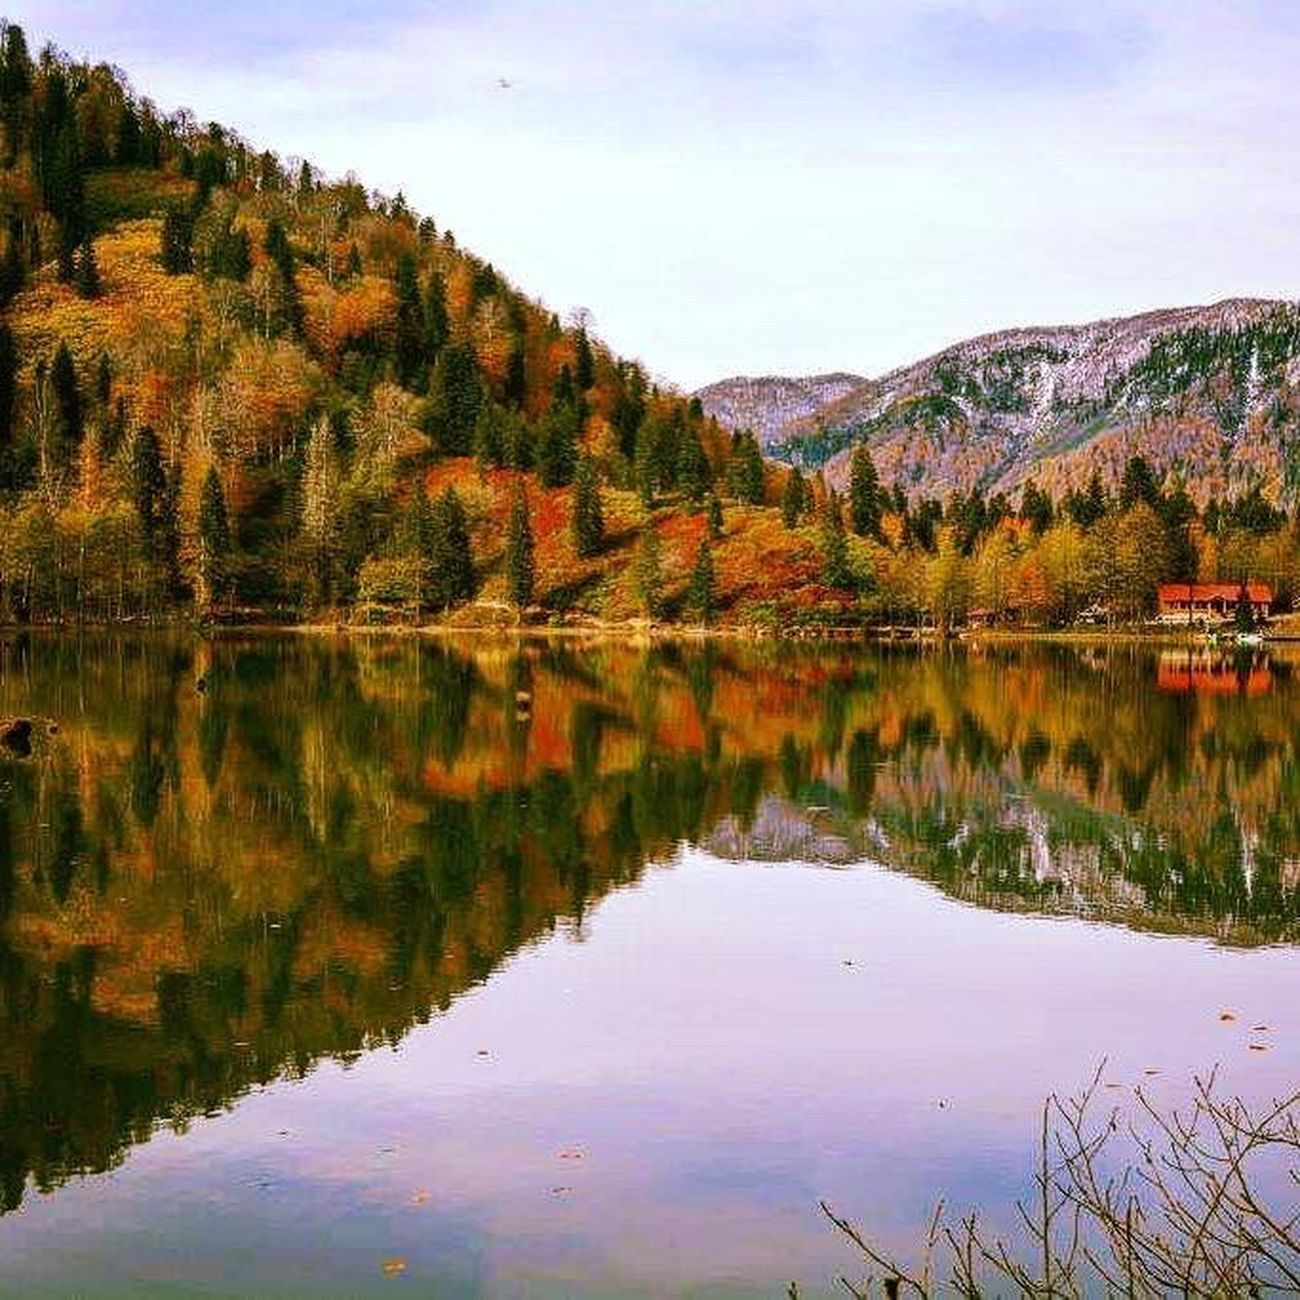 Karagölyaylası Borçka Artvin Turkey Reflection Autumn Beauty In Nature Lake Relaxing Traveling View Open Edit Hello World Traveler Enjoying Life Beauty In Nature Water Reflections Myobjektive